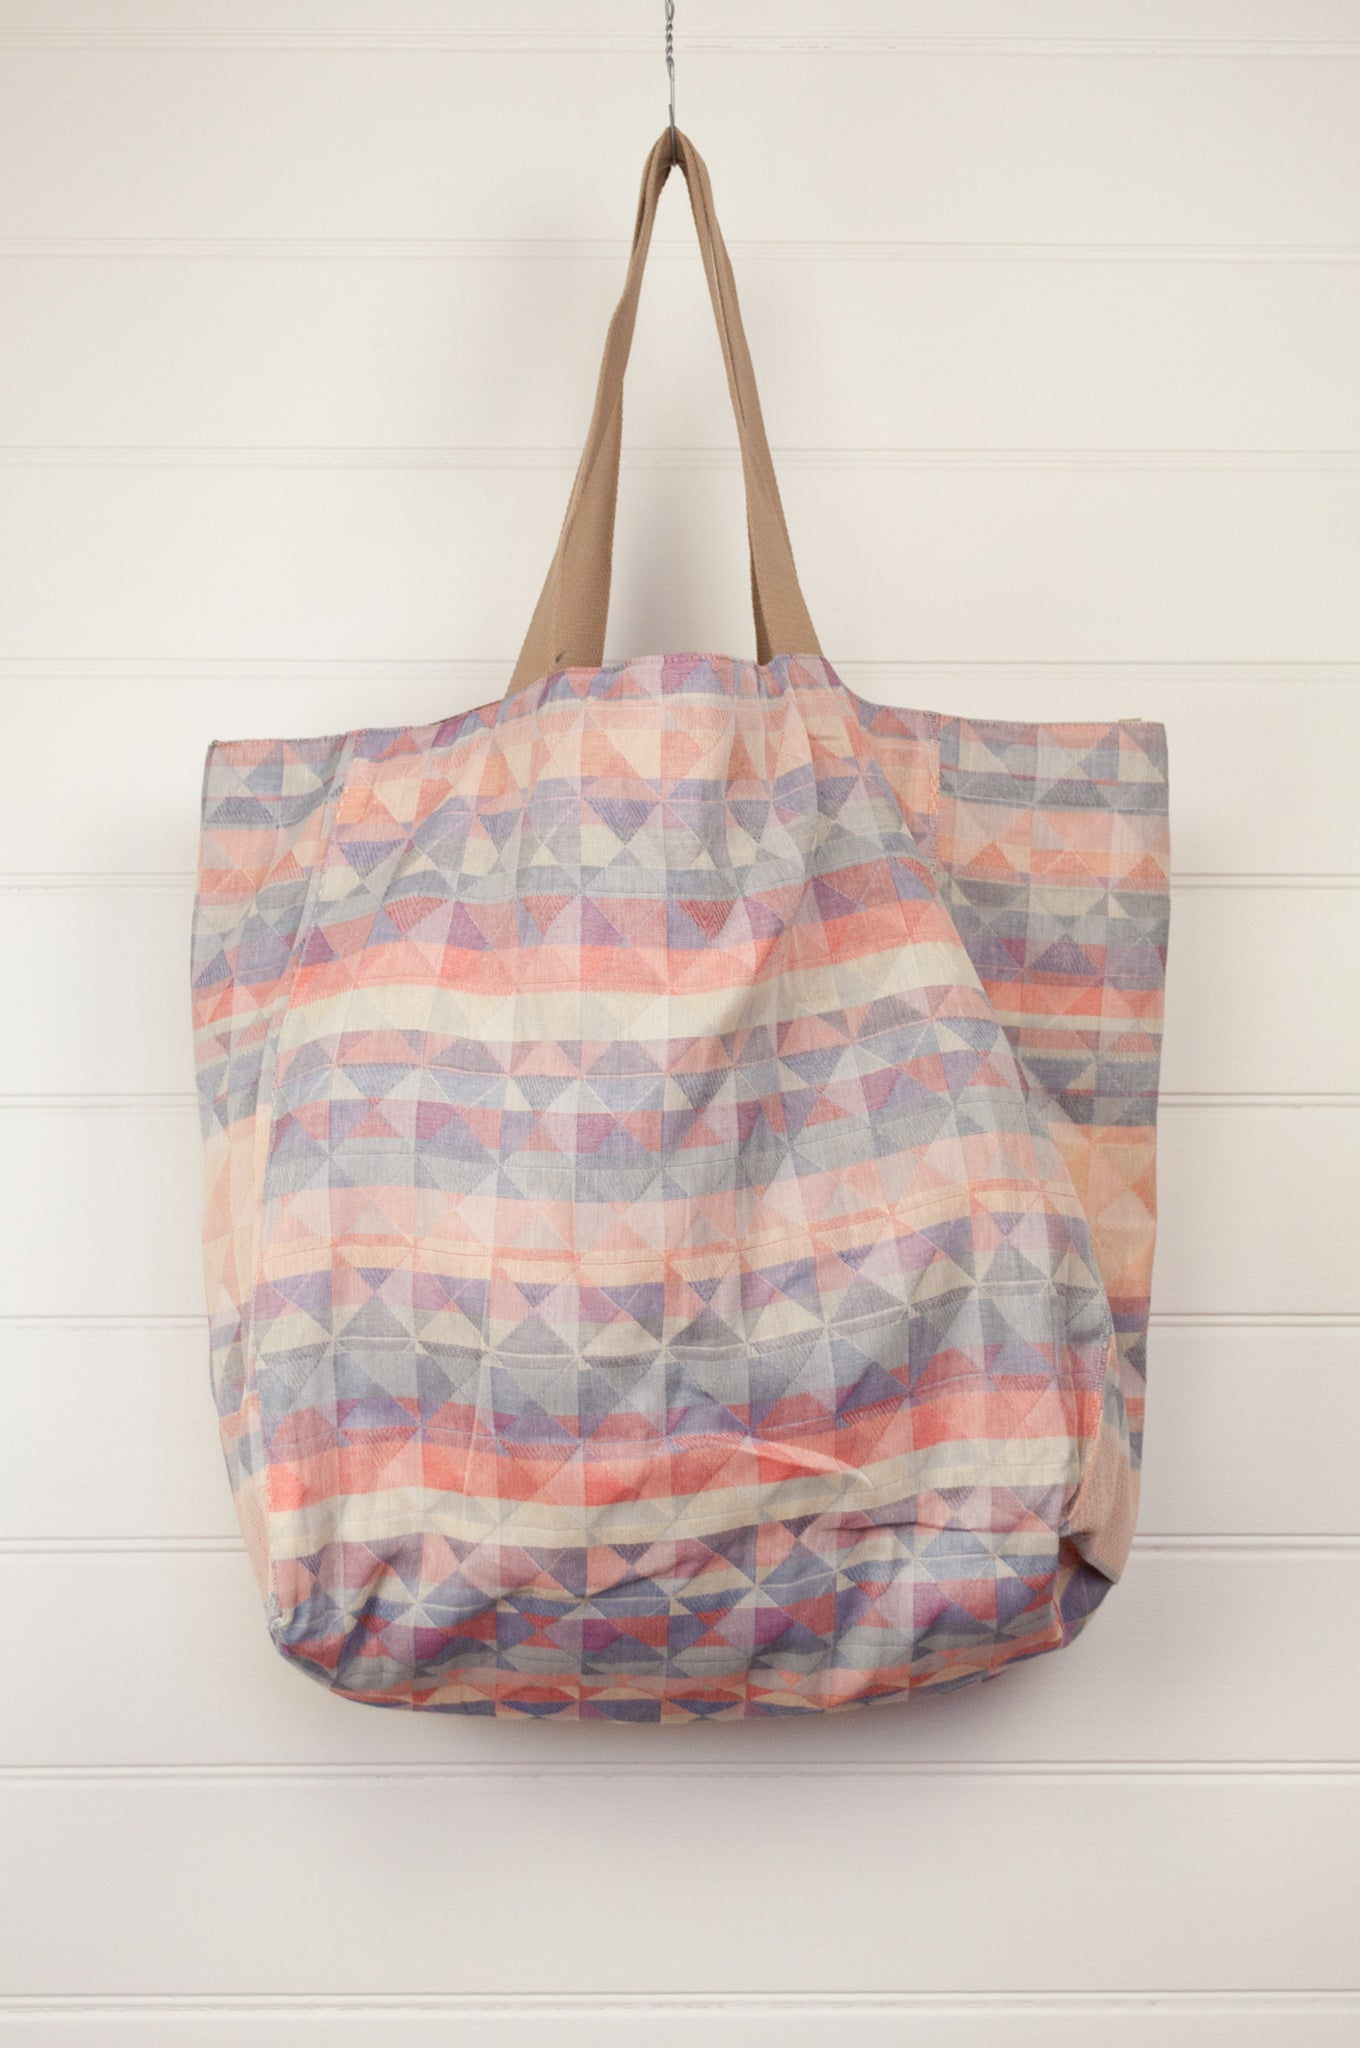 Létol made in France organic cotton reversible large tote bag, jacquard pattern in Milan design in sorbet colours of blush pink, mint, lilac, light blue and silver with a geometric pattern in rust and terracotta reverse.